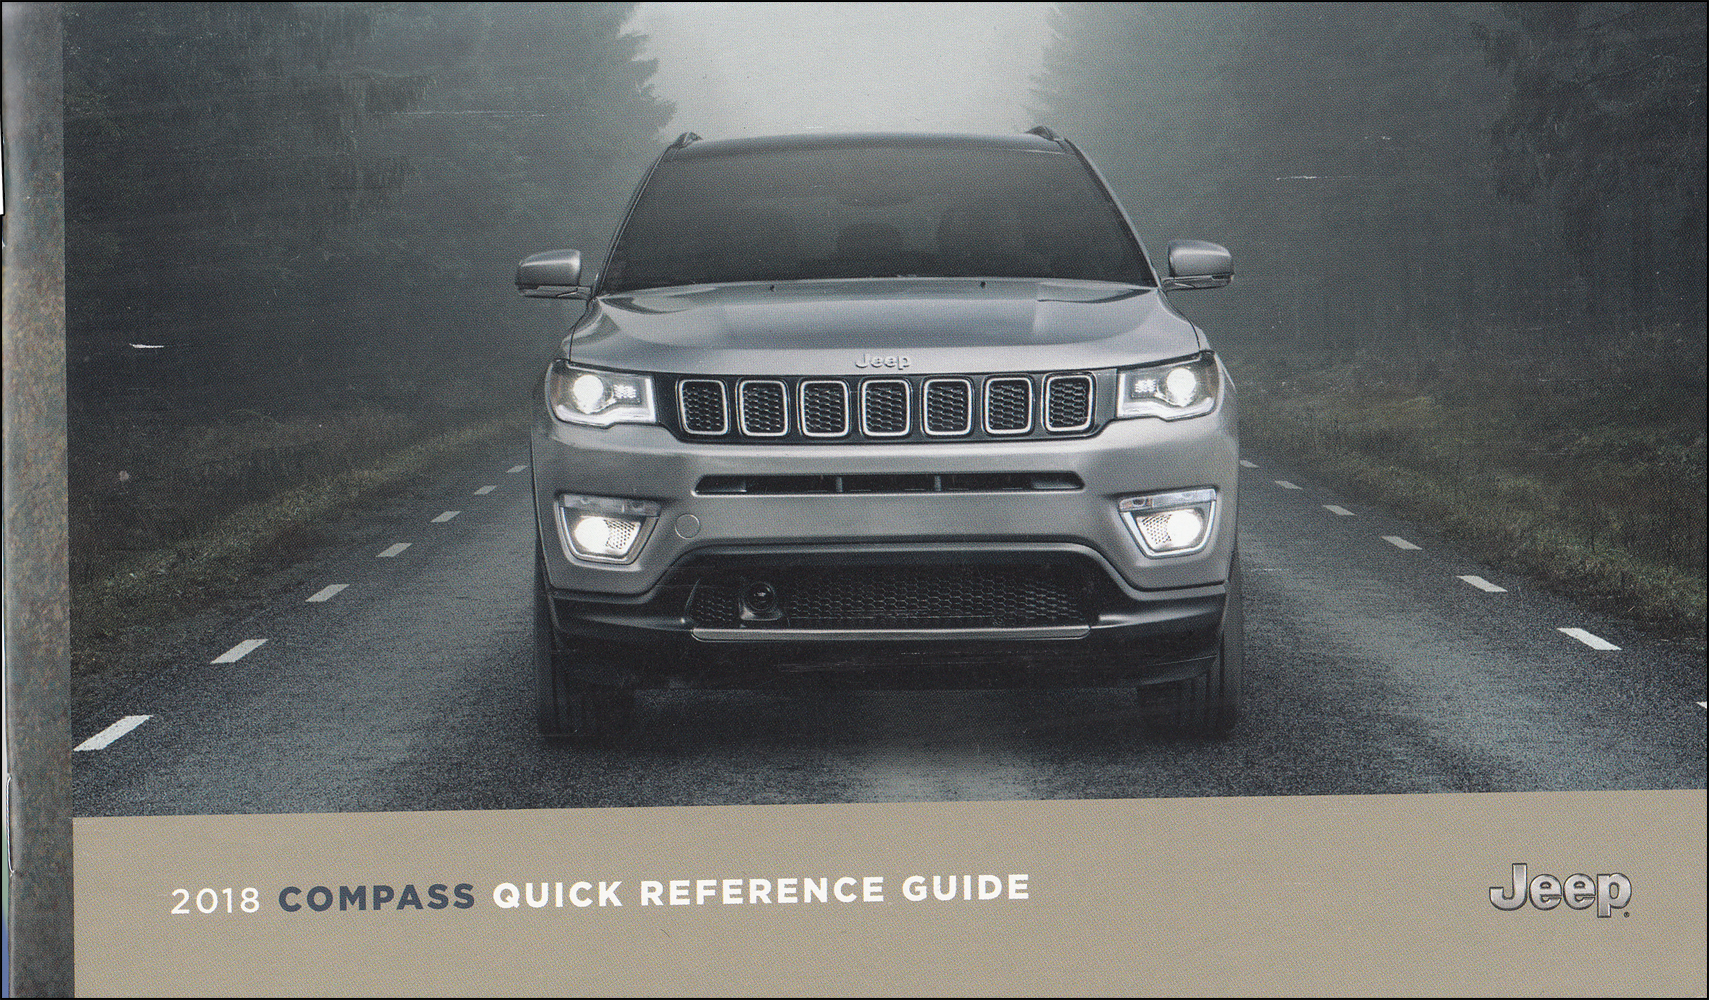 Jeep 2018 Compass Suv Owner U0026 39 S Manual Manual Guide